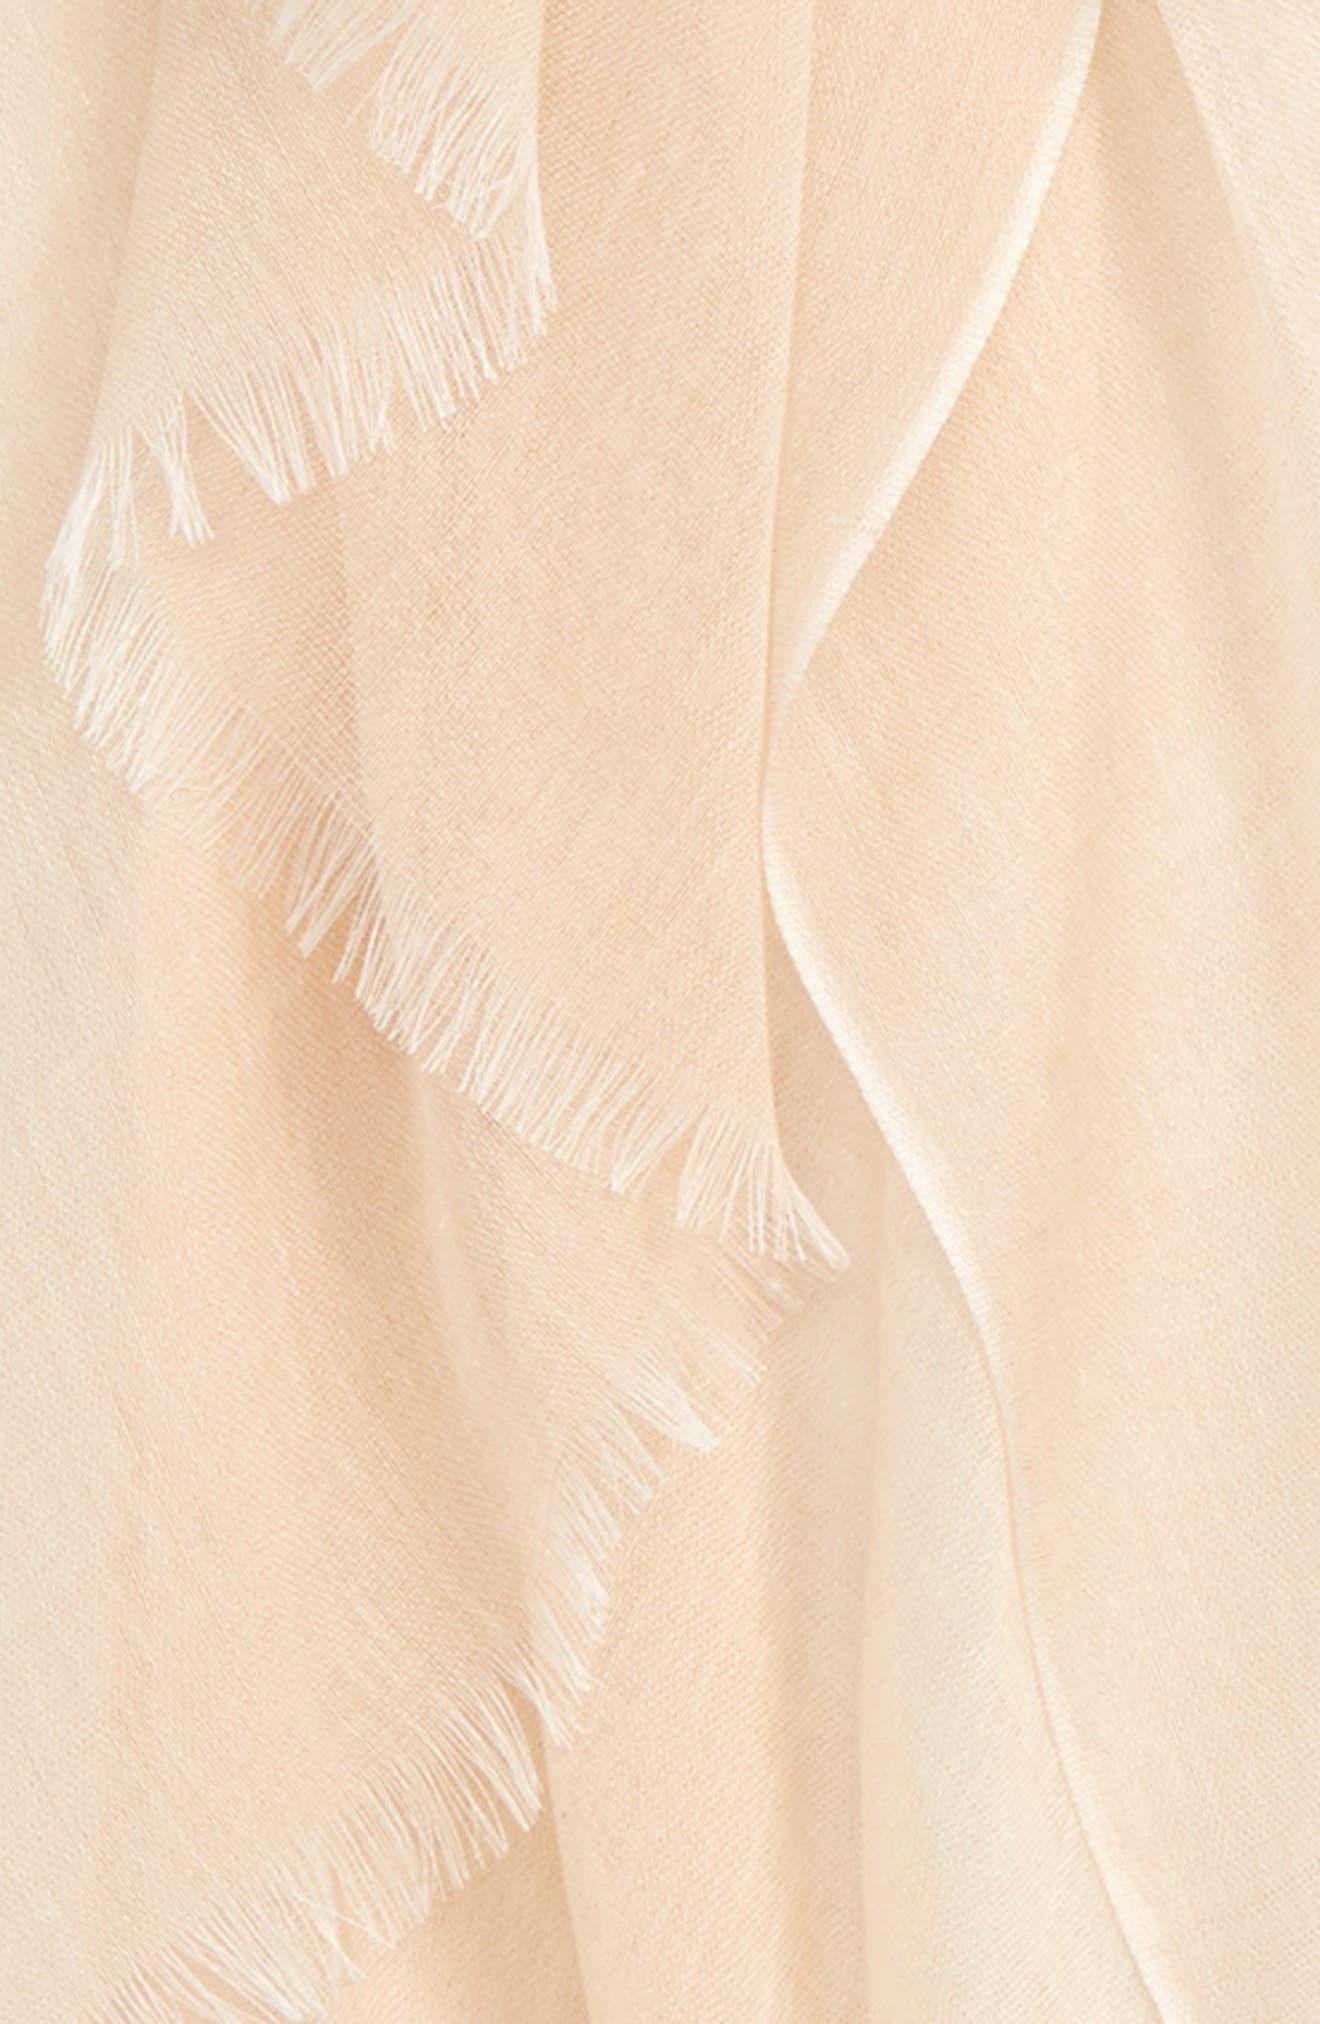 NORDSTROM, Modal Silk Blend Scarf, Alternate thumbnail 4, color, BEIGE BISCUIT